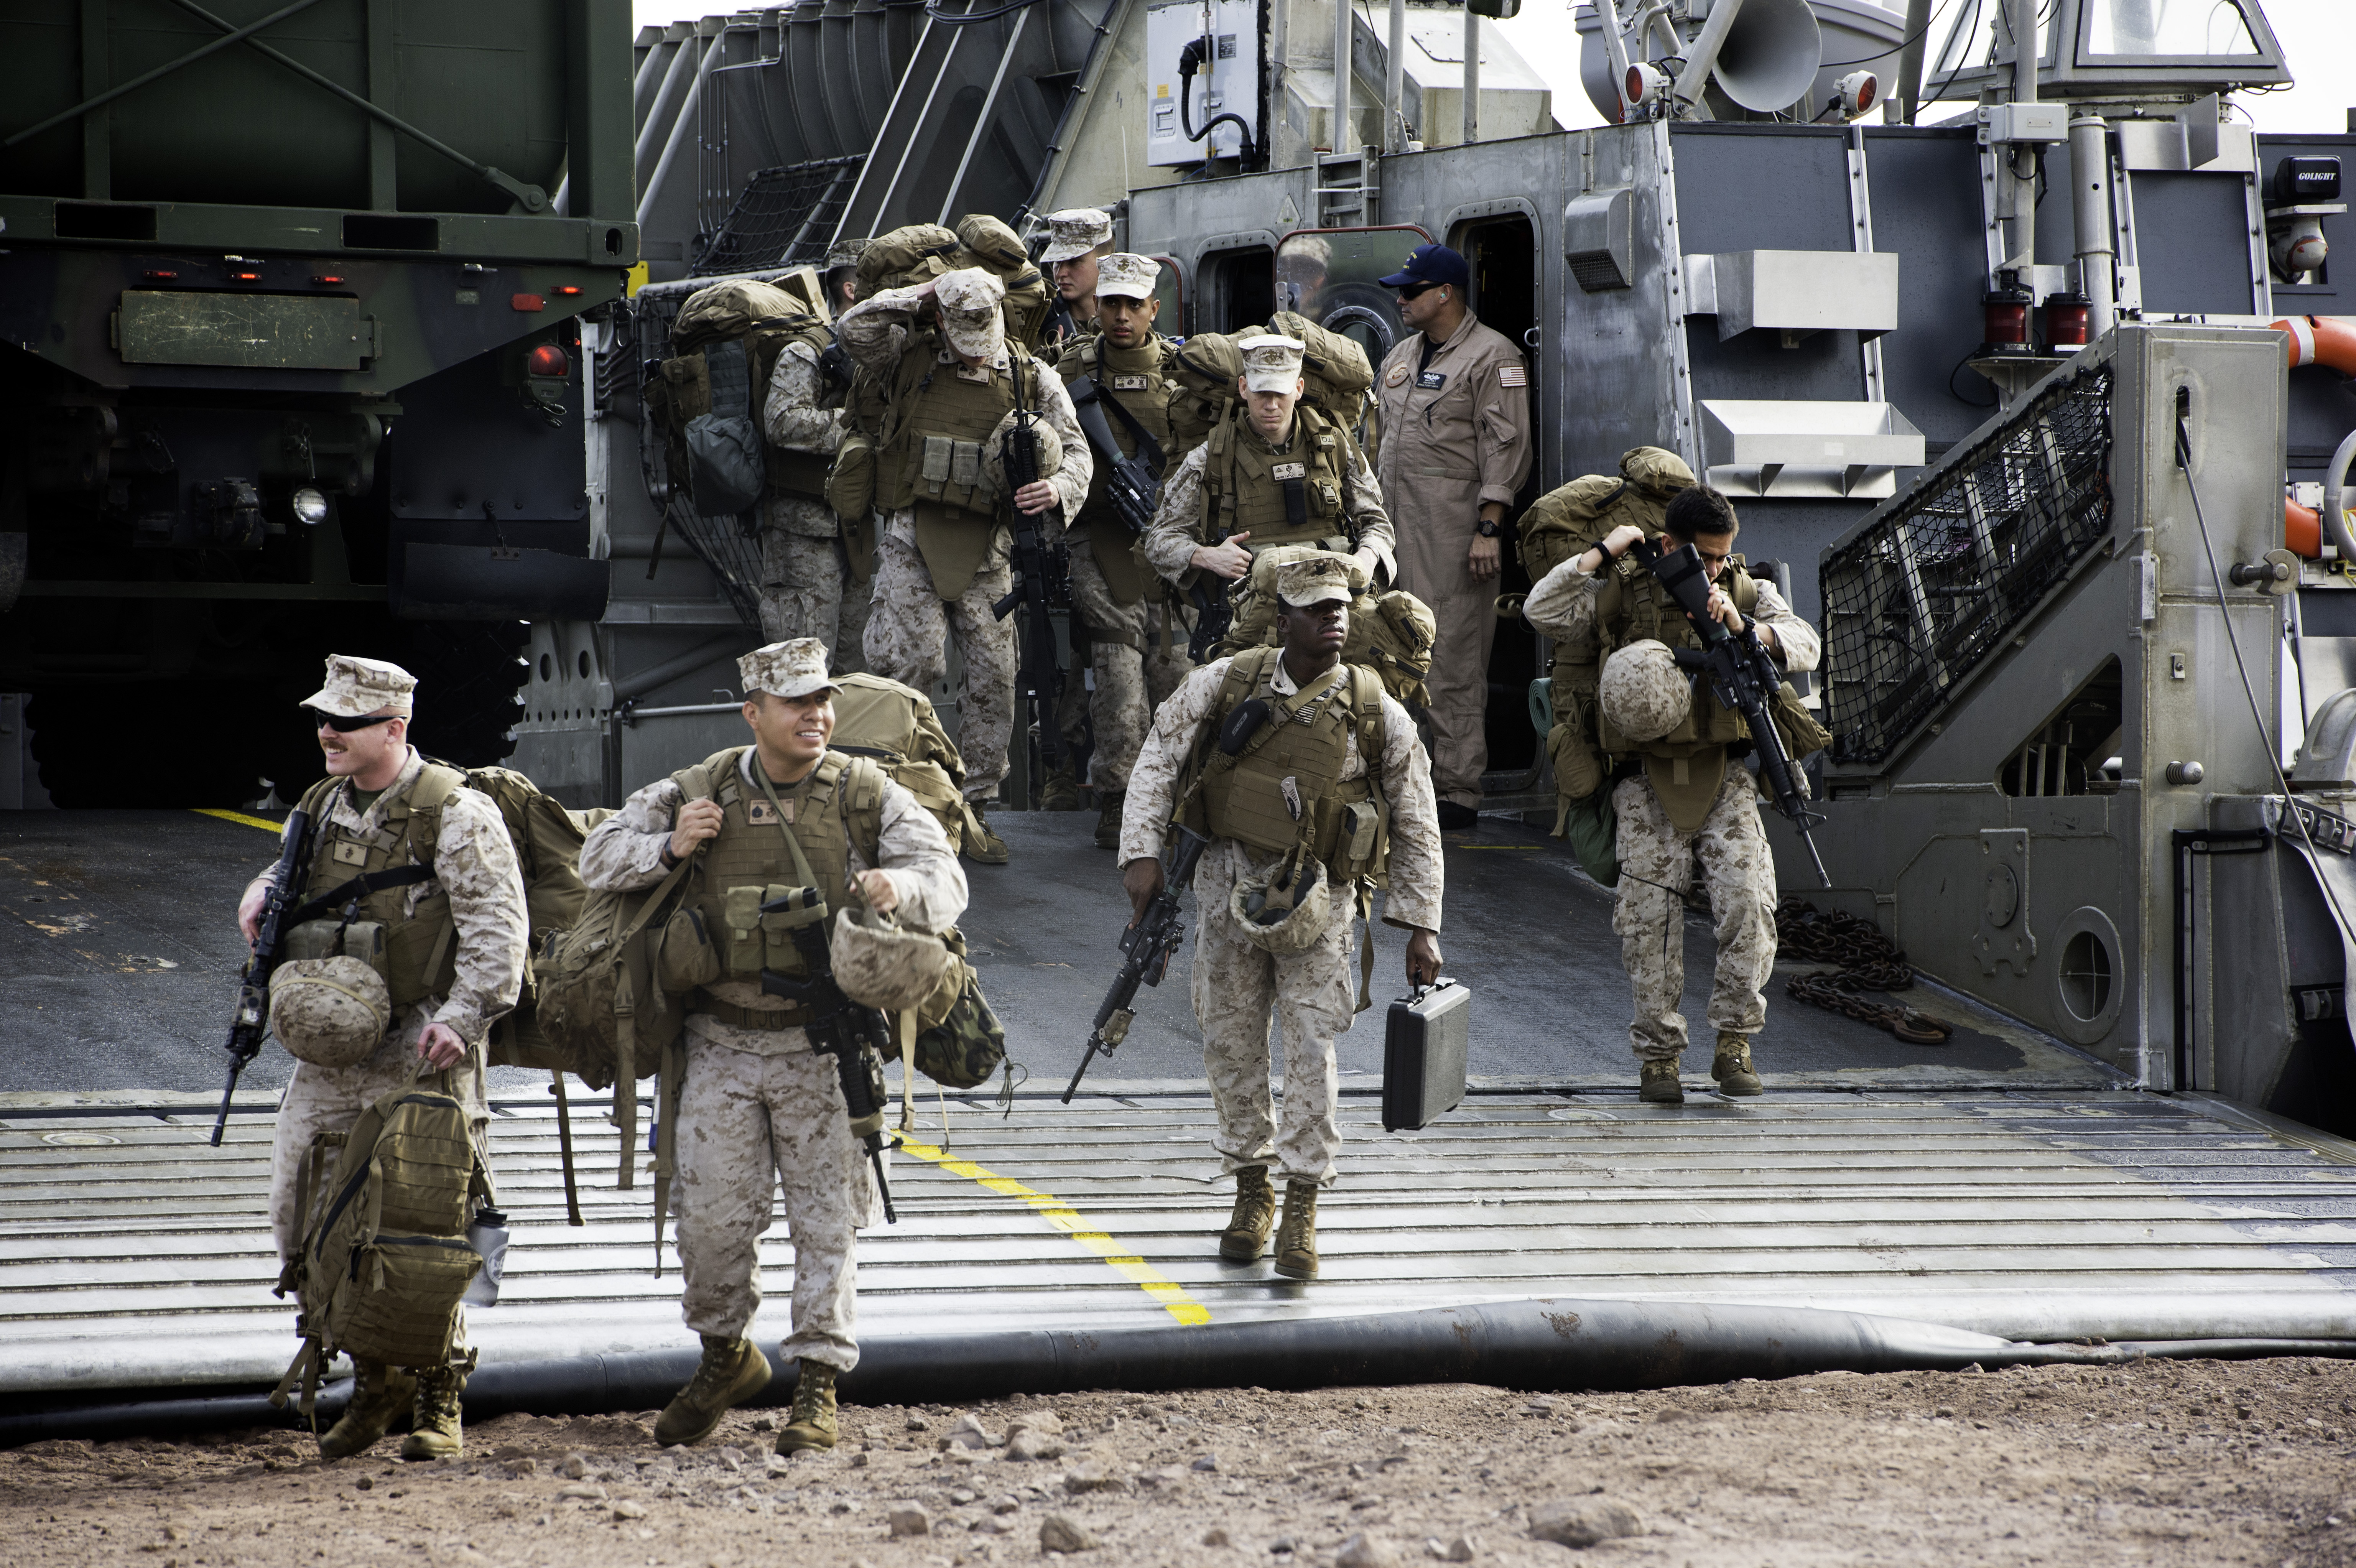 U.S. Marines from the 15th Marine Expeditionary Unit step off a U.S. Navy Landing Craft Air Cushion (LCAC) at Arta Beach, Djibouti, July 20, 2015. The Marines arrived in Djibouti from the San Antonio-class amphibious transport dock ship USS Anchorage (LPD-23) for two weeks of sustainment training which included, live fire exercises, and mounted vehicle patrols. (U.S. Air Force photo by Staff Sgt. Nathan Maysonet)